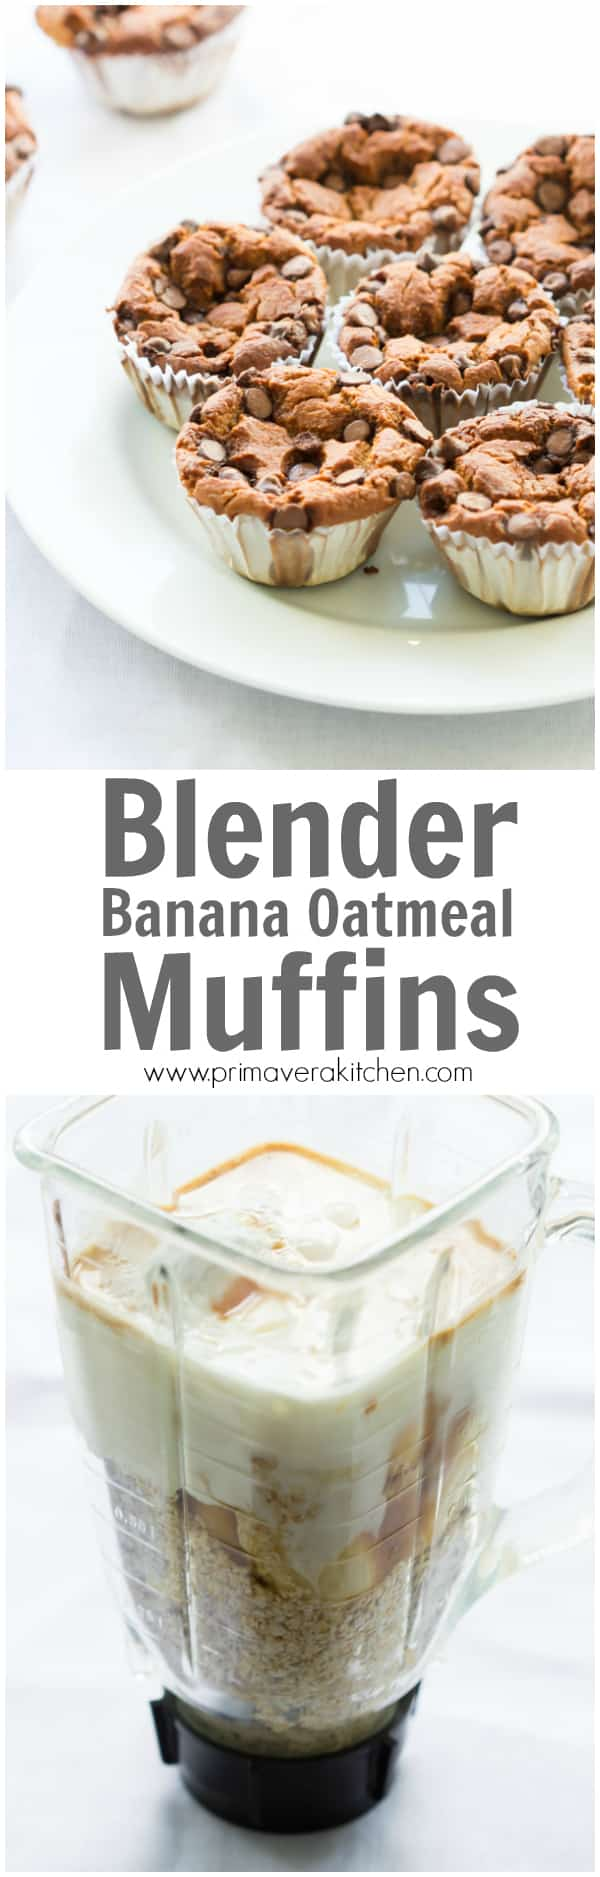 blender banana oatmeal muffins - primavera kitchen